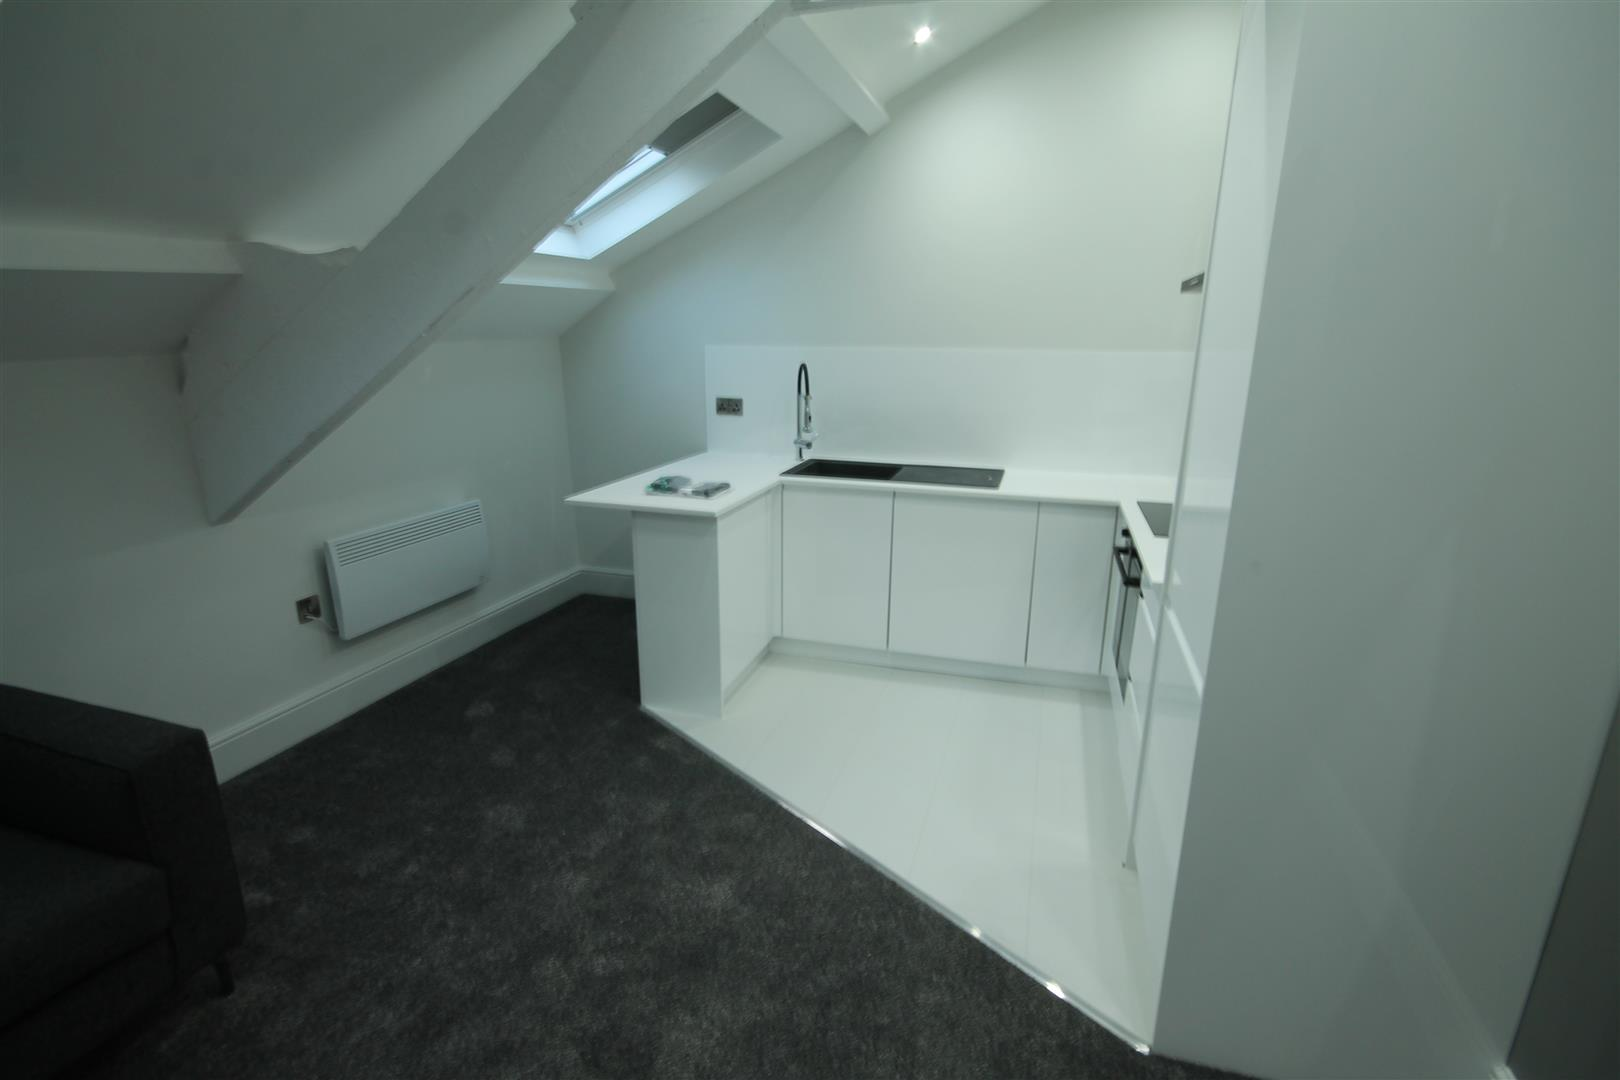 15-21 Nun Street Newcastle Upon Tyne, 1 Bedrooms  Apartment - conversion ,To Let